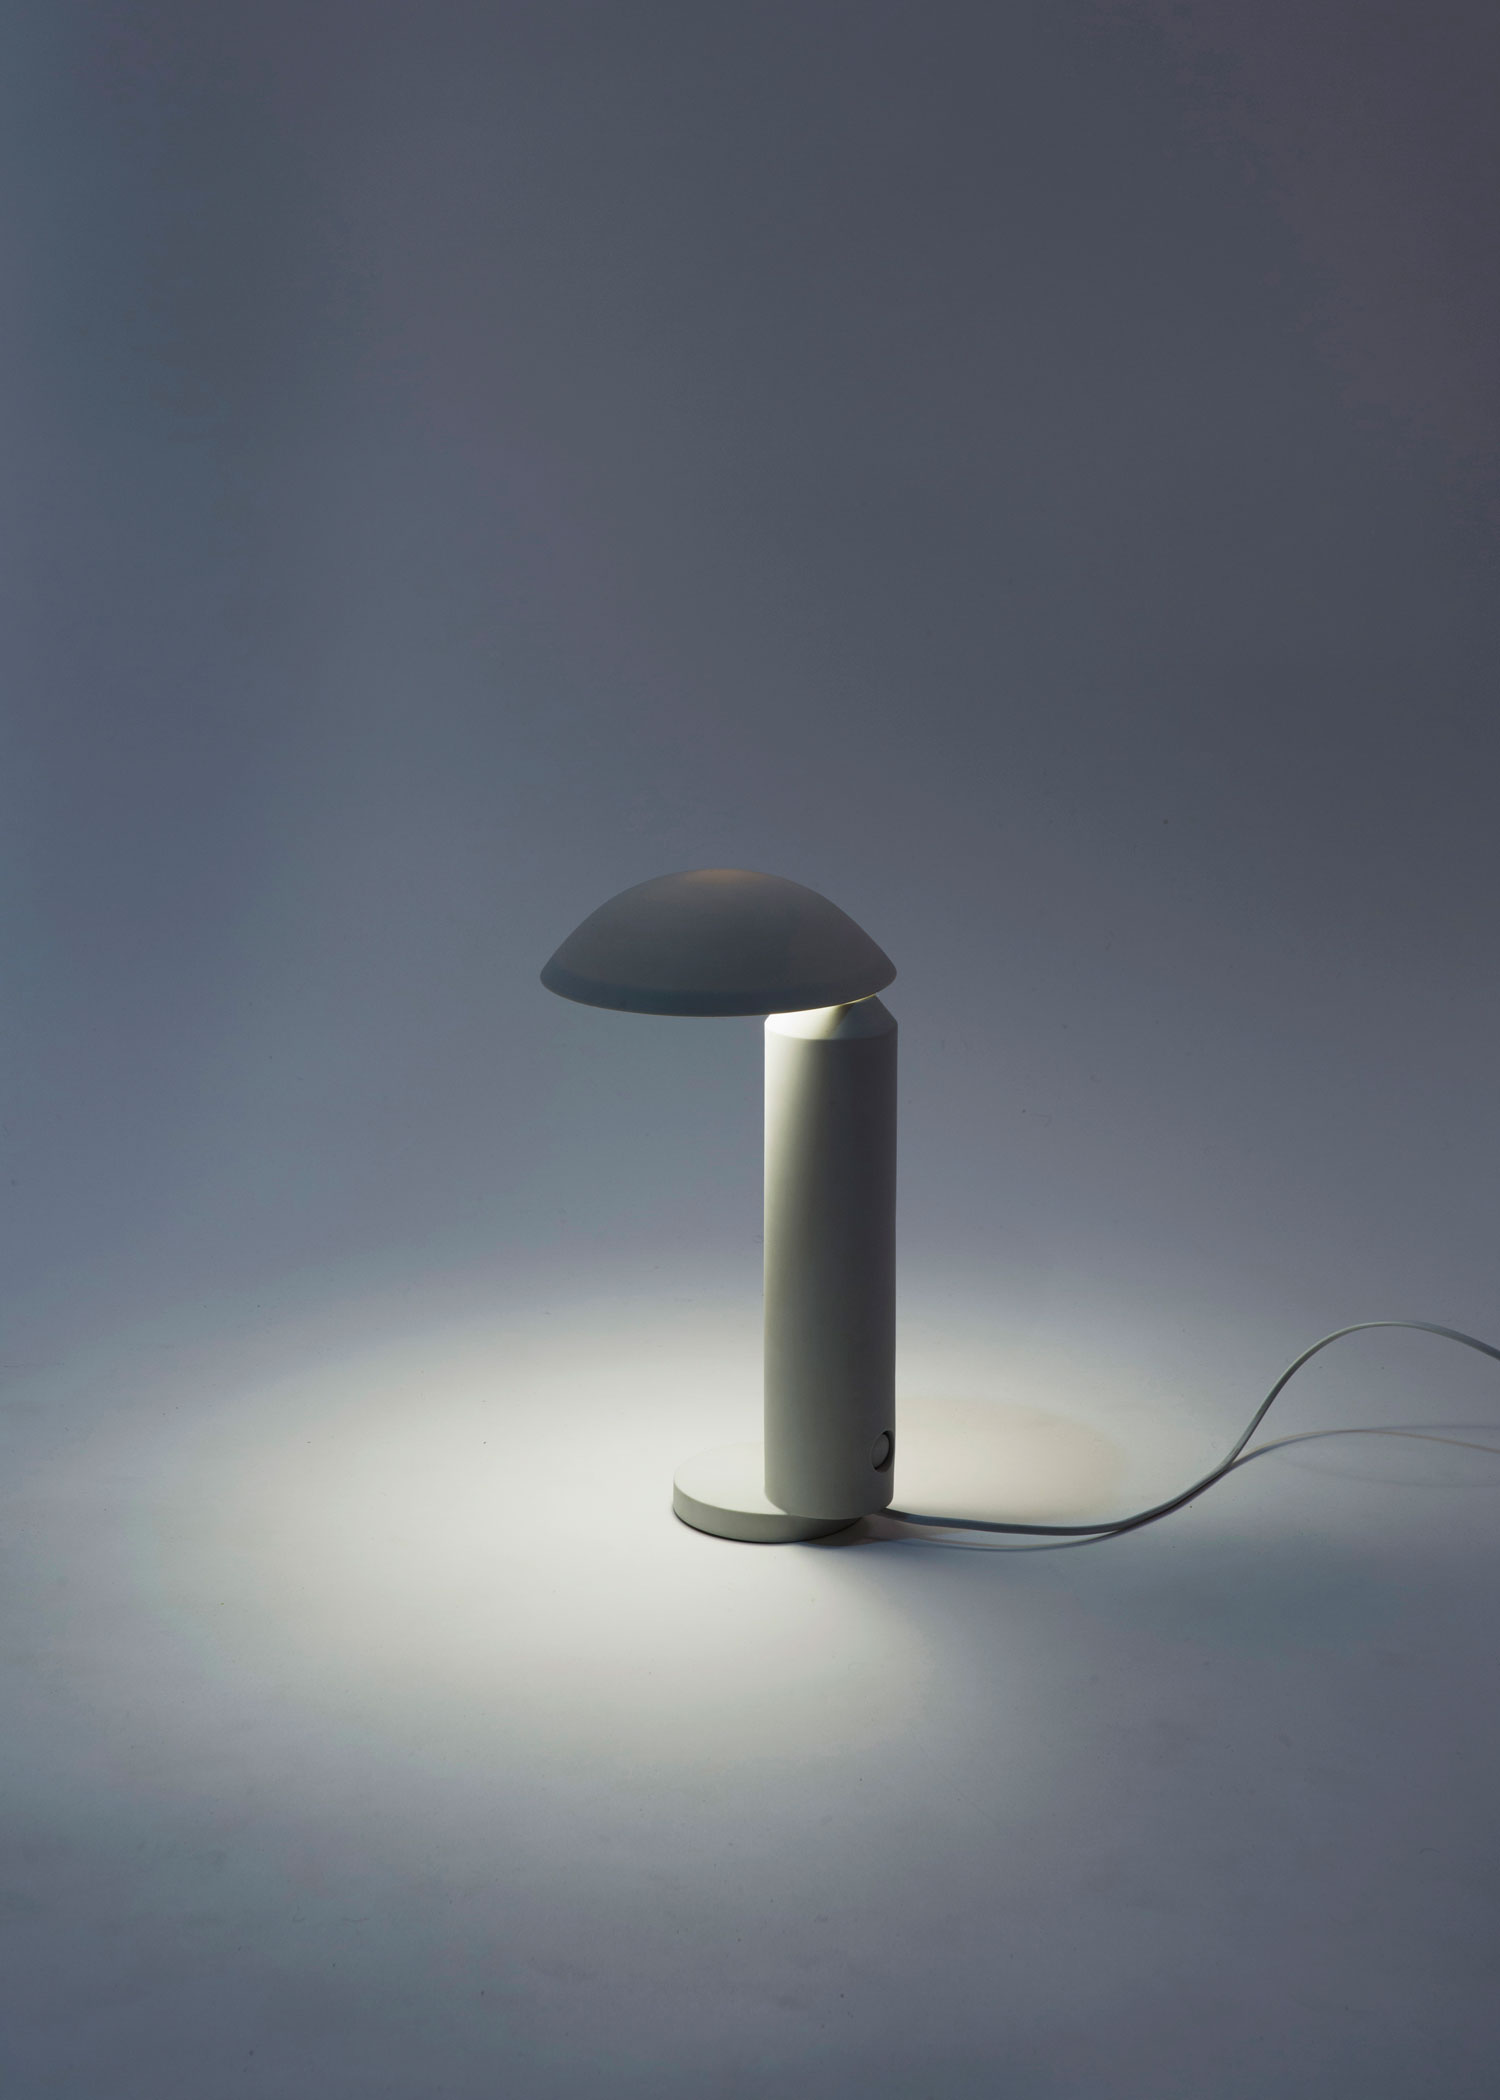 Abyss Desk Lamp by Tobias Nitsche, Manuel Amaral Netto & Cesare Bizzotto | Yellowtrace